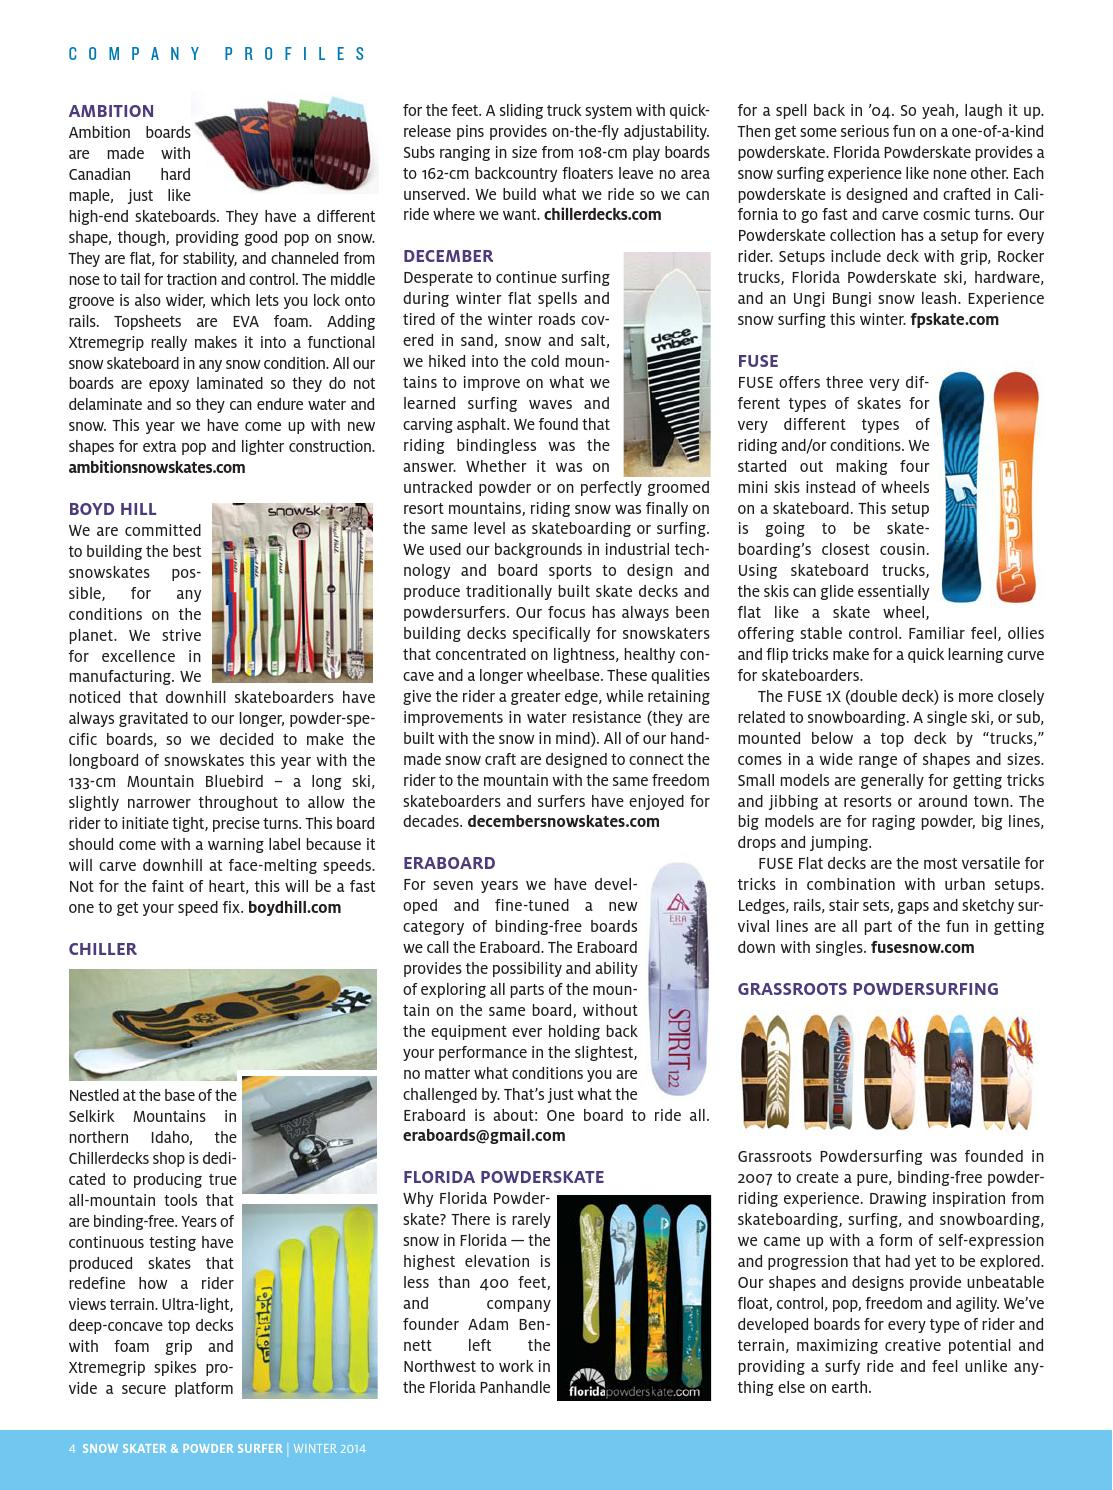 Snow Skater & Powder Surfer by Concrete Wave Magazine - issuu